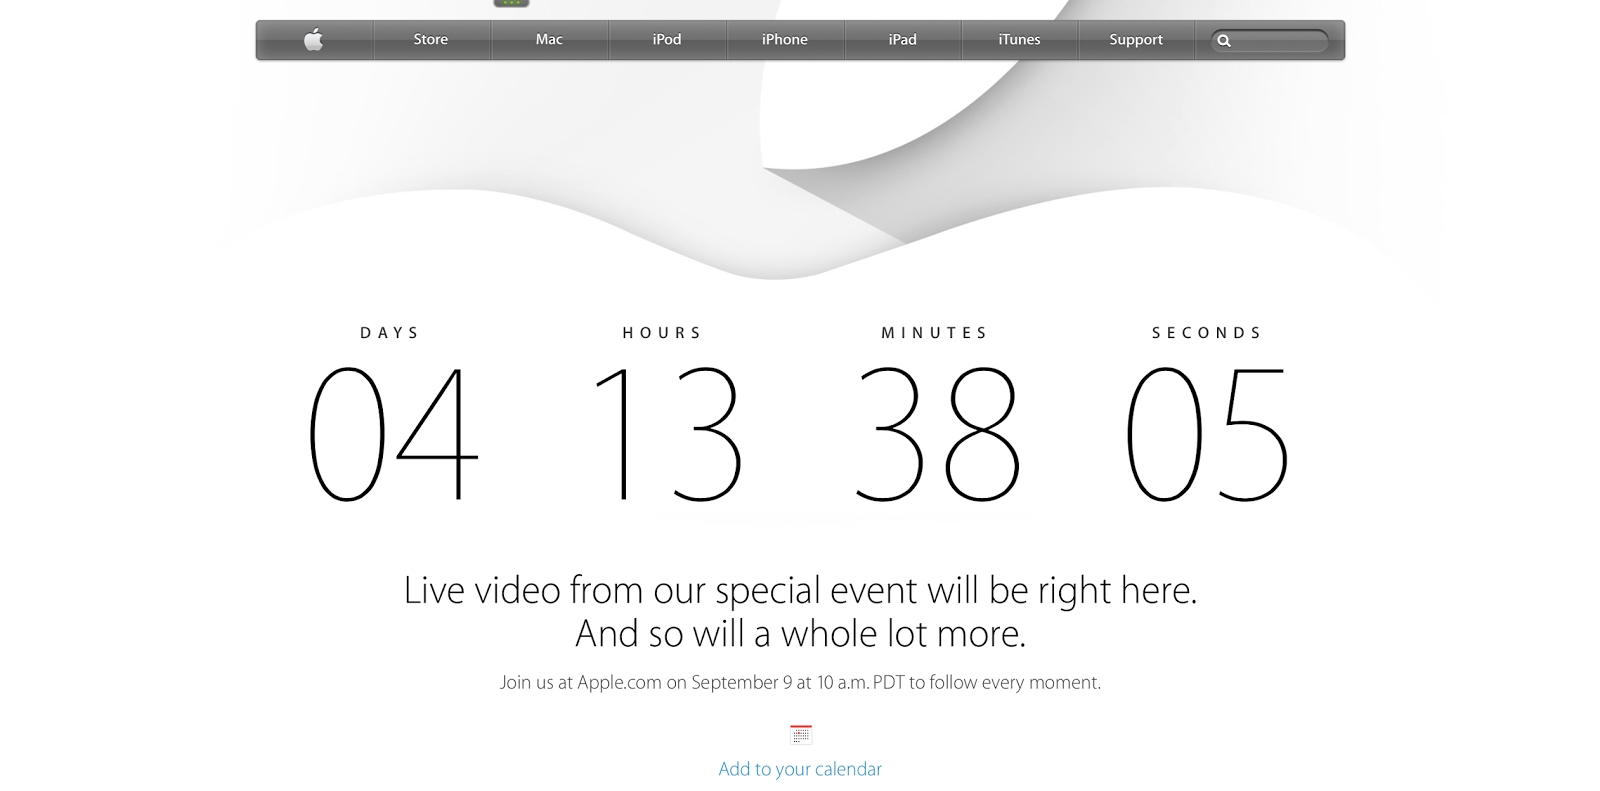 Tech Talk 4 Geeks: Apple Makes Page With Countdown For Iphone 6 Event_Calendar Countdown Iphone 6